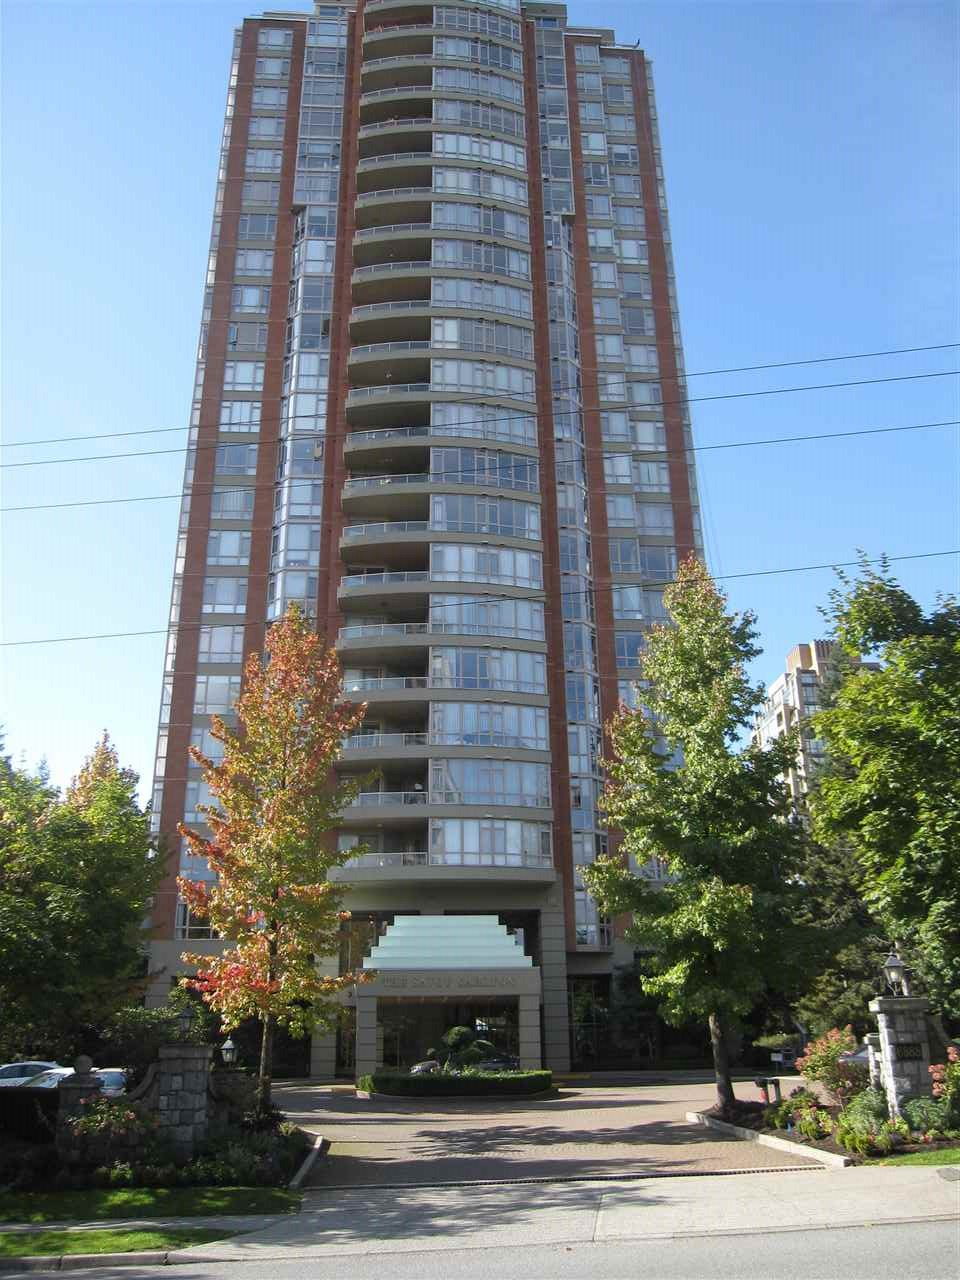 Very easy to show. Excellent opportunity to purchase a lovely 2 bedroom 2 bathroom suite in a very well managed building. This unit boasts a spectacular 180 degree view. Large kitchen and spacious rooms throughout, newly finished engineered wood flooring in living/dining room and hall new carpeting in bedrooms. New window covering on all windows. All rooms completely and freshly painted. relax on your large balcony ideal for BBQ. This unit features Media Rm. Games Rm. Fully equipped exercise rm. Spectacular indoor pool TWO PARKING STALLS AND ONE LARGE STORAGE LOCKER. These units do not last long on the market. This is a must see do not miss.